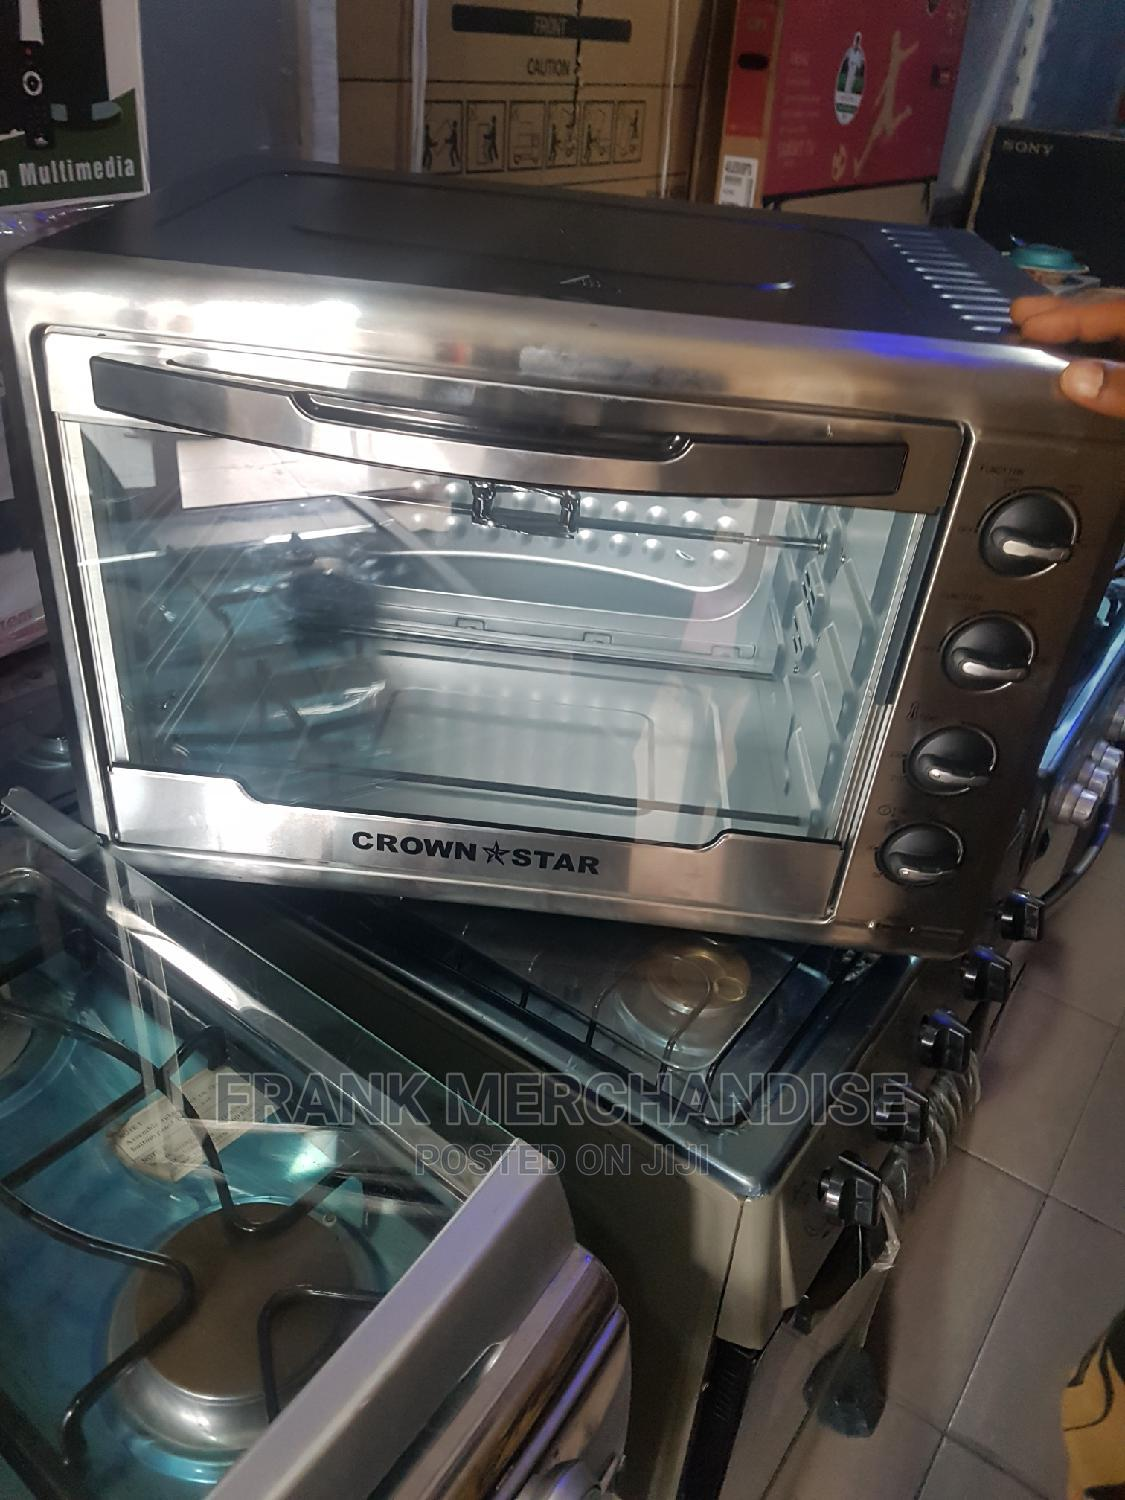 CROWN*STAR 60litters Electric Oven 100%Copper